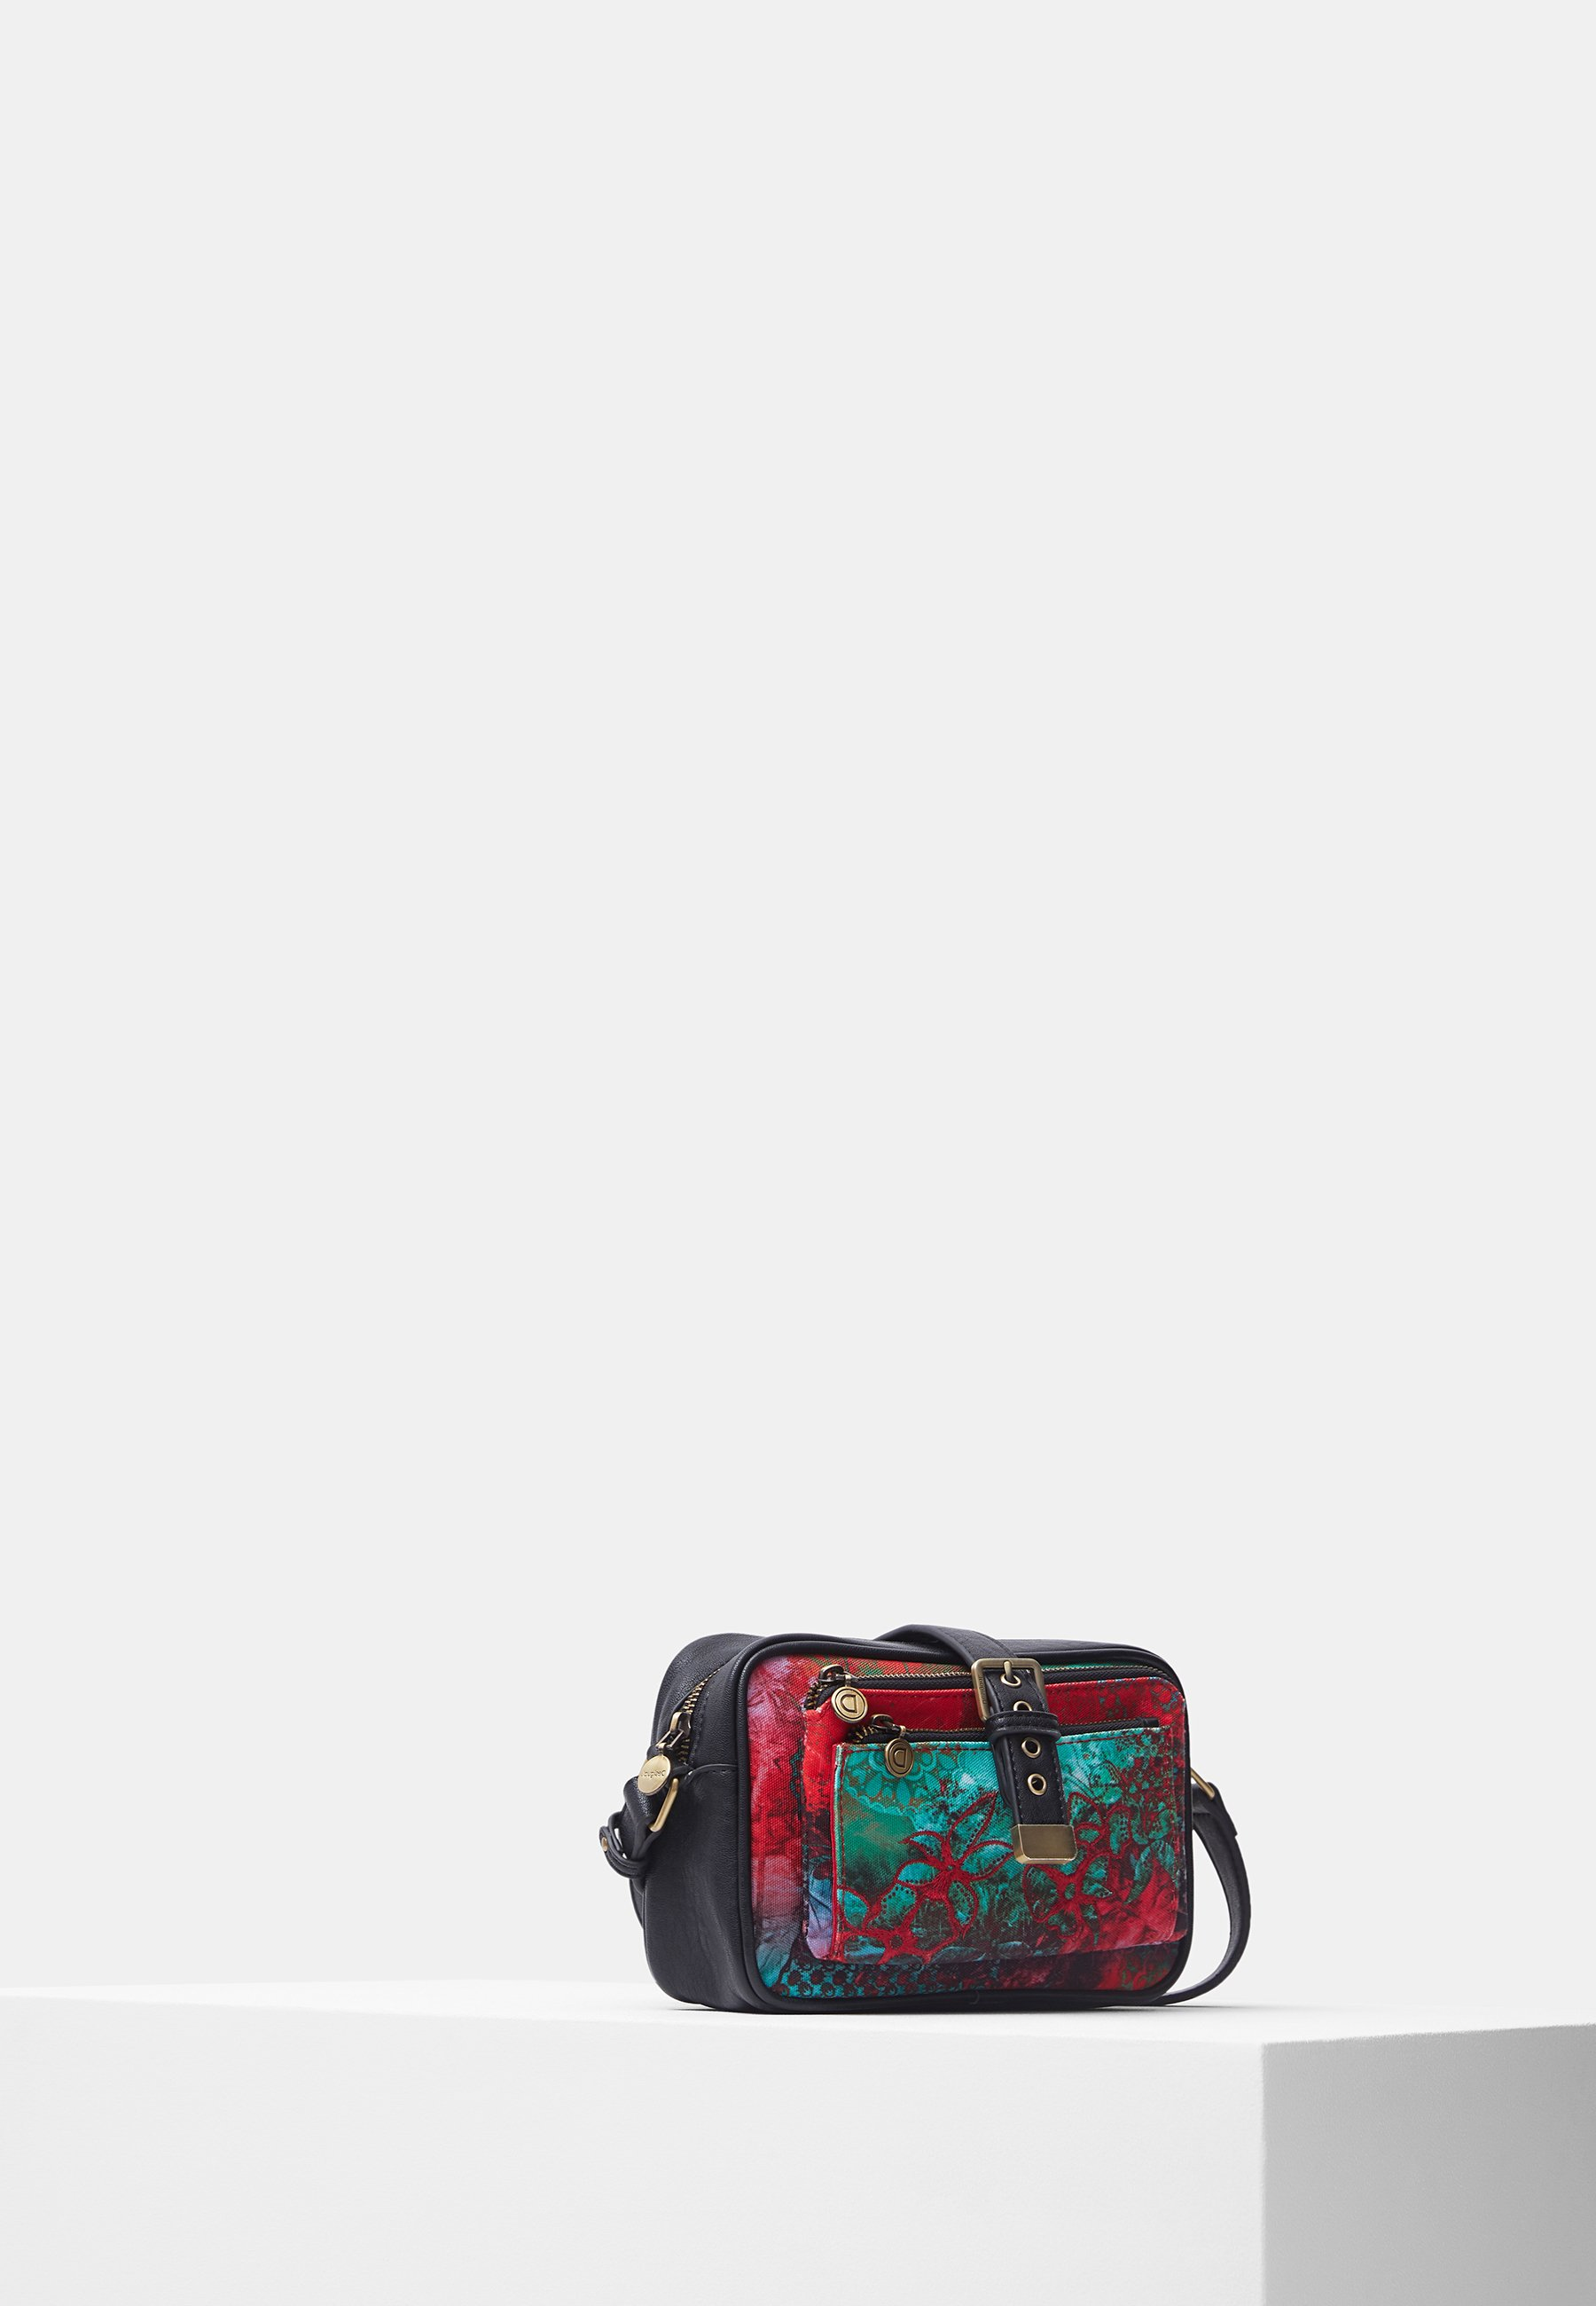 Factory Price Limit Discount Accessories Desigual Across body bag red 3U0JSTc7p YDE0Oh45l